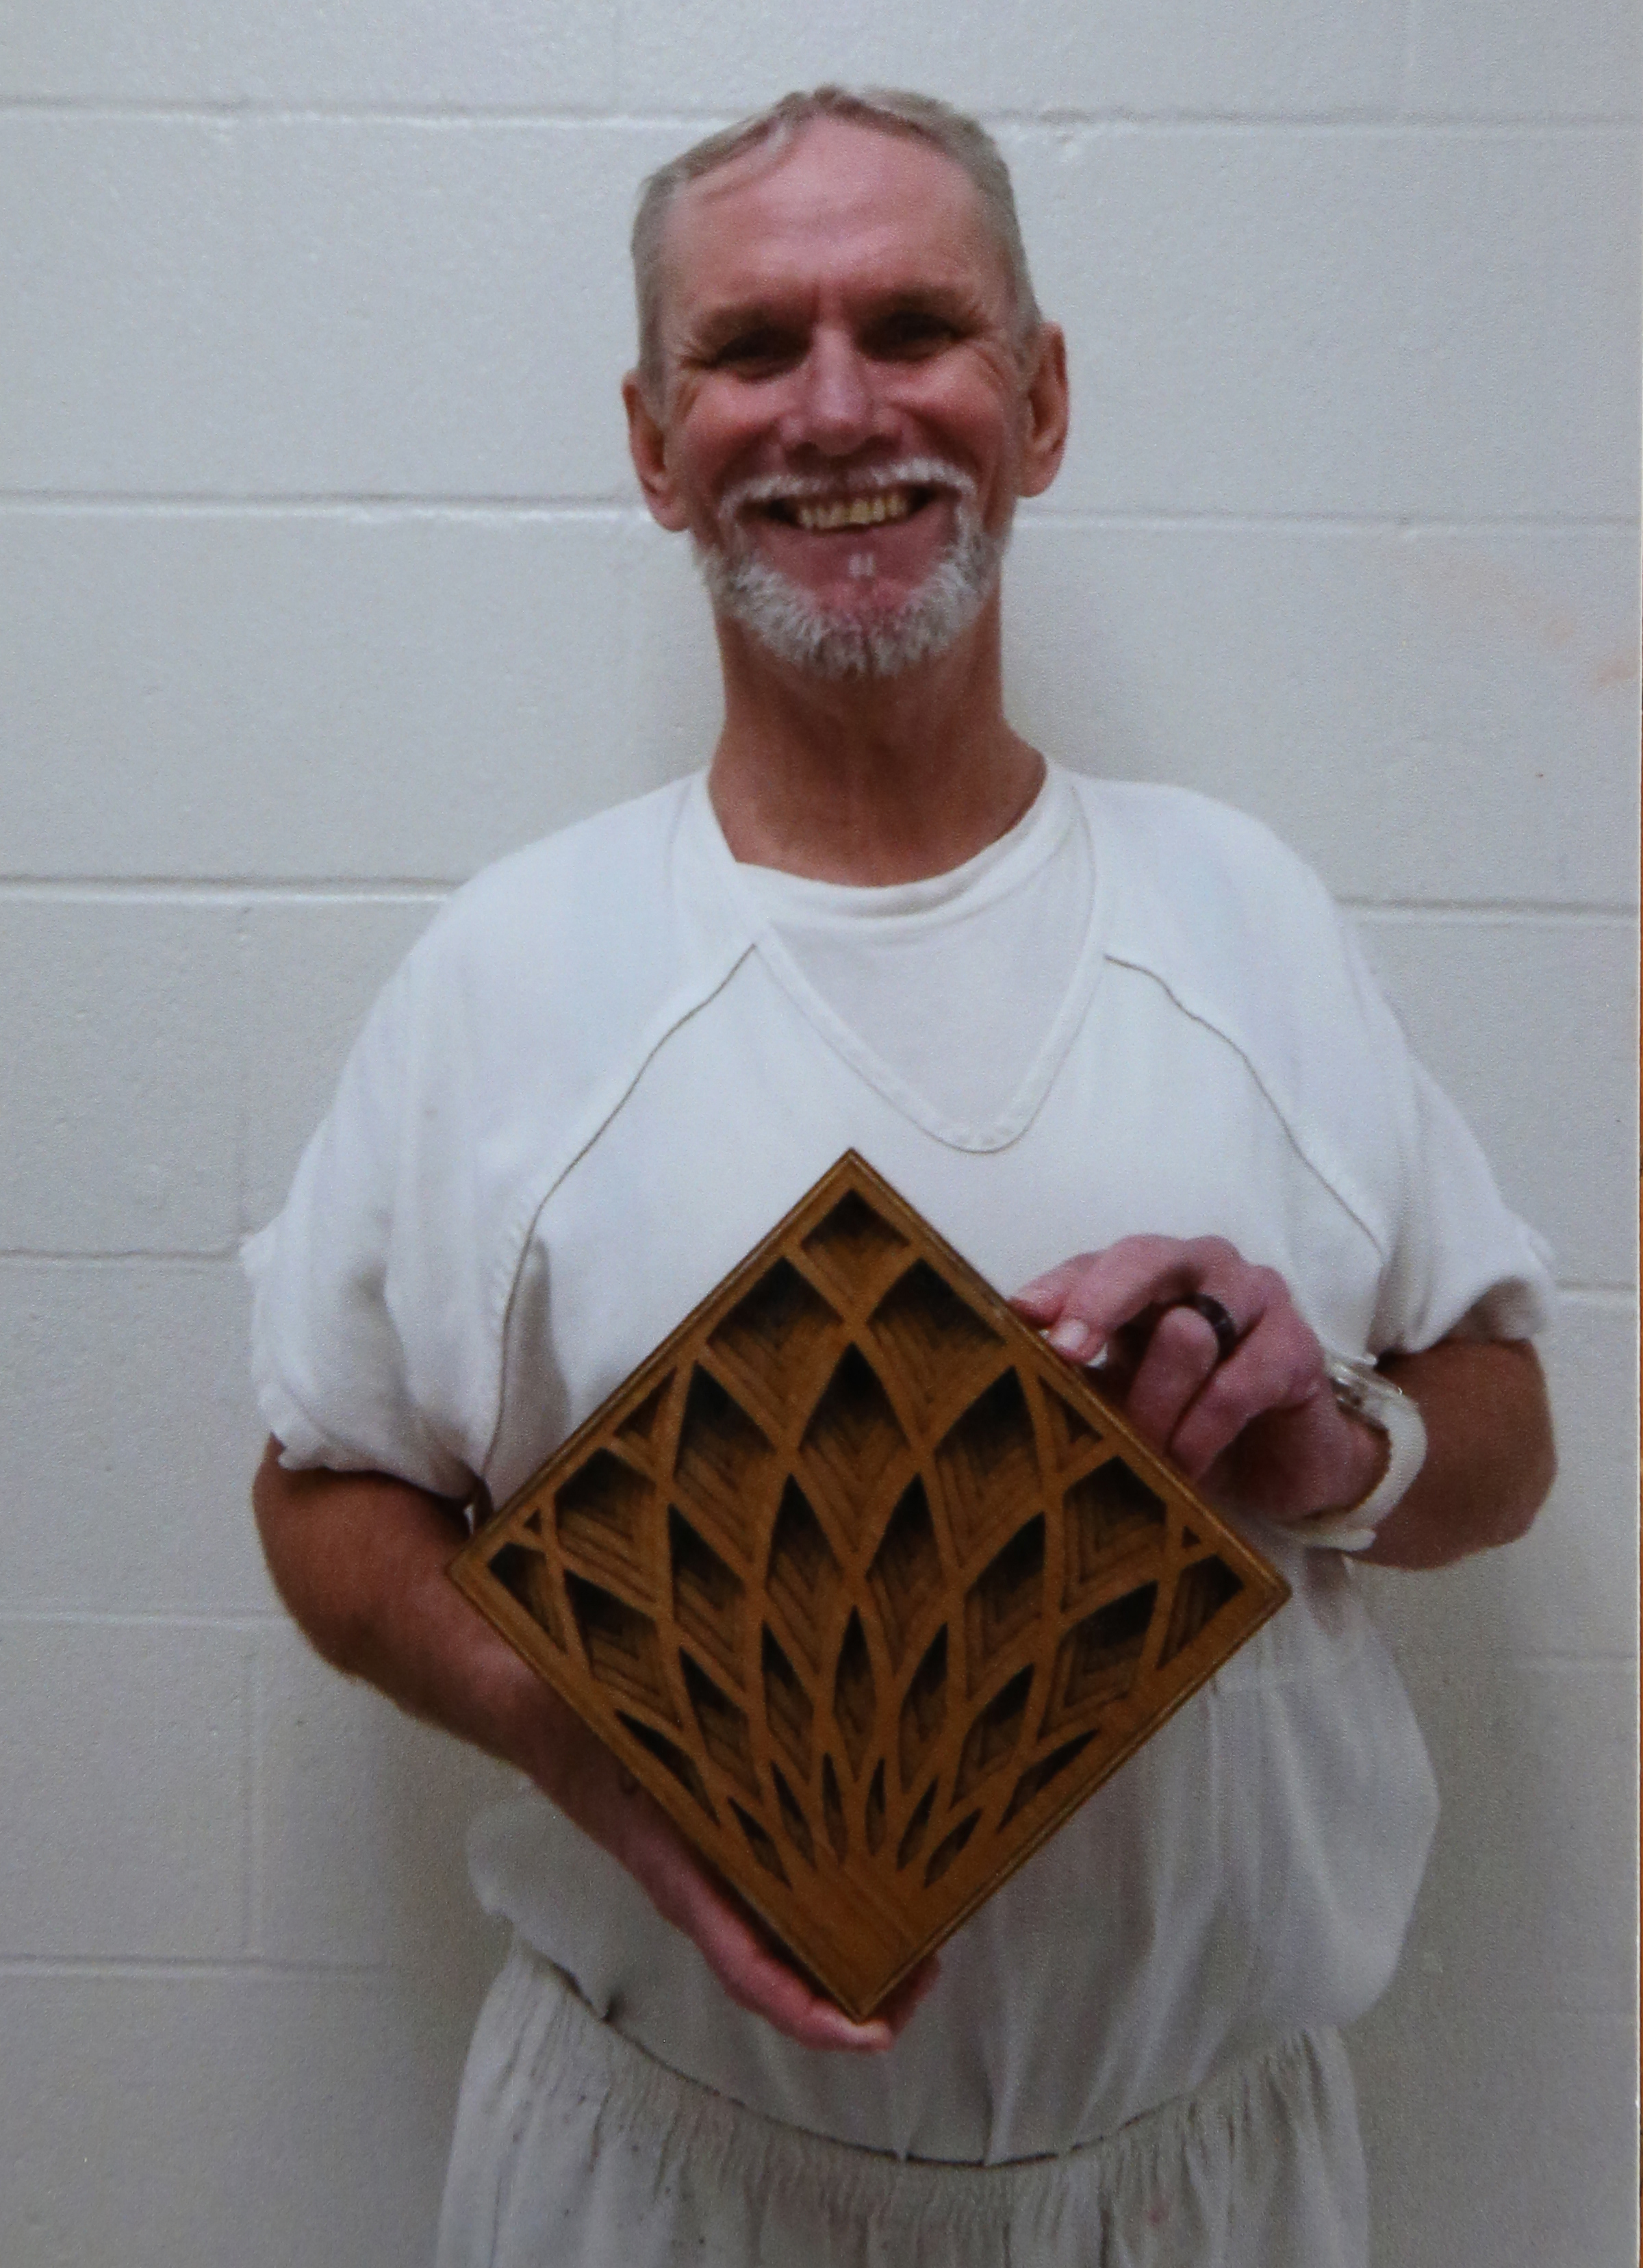 Dennis Perry passes time learning new skills in prison.